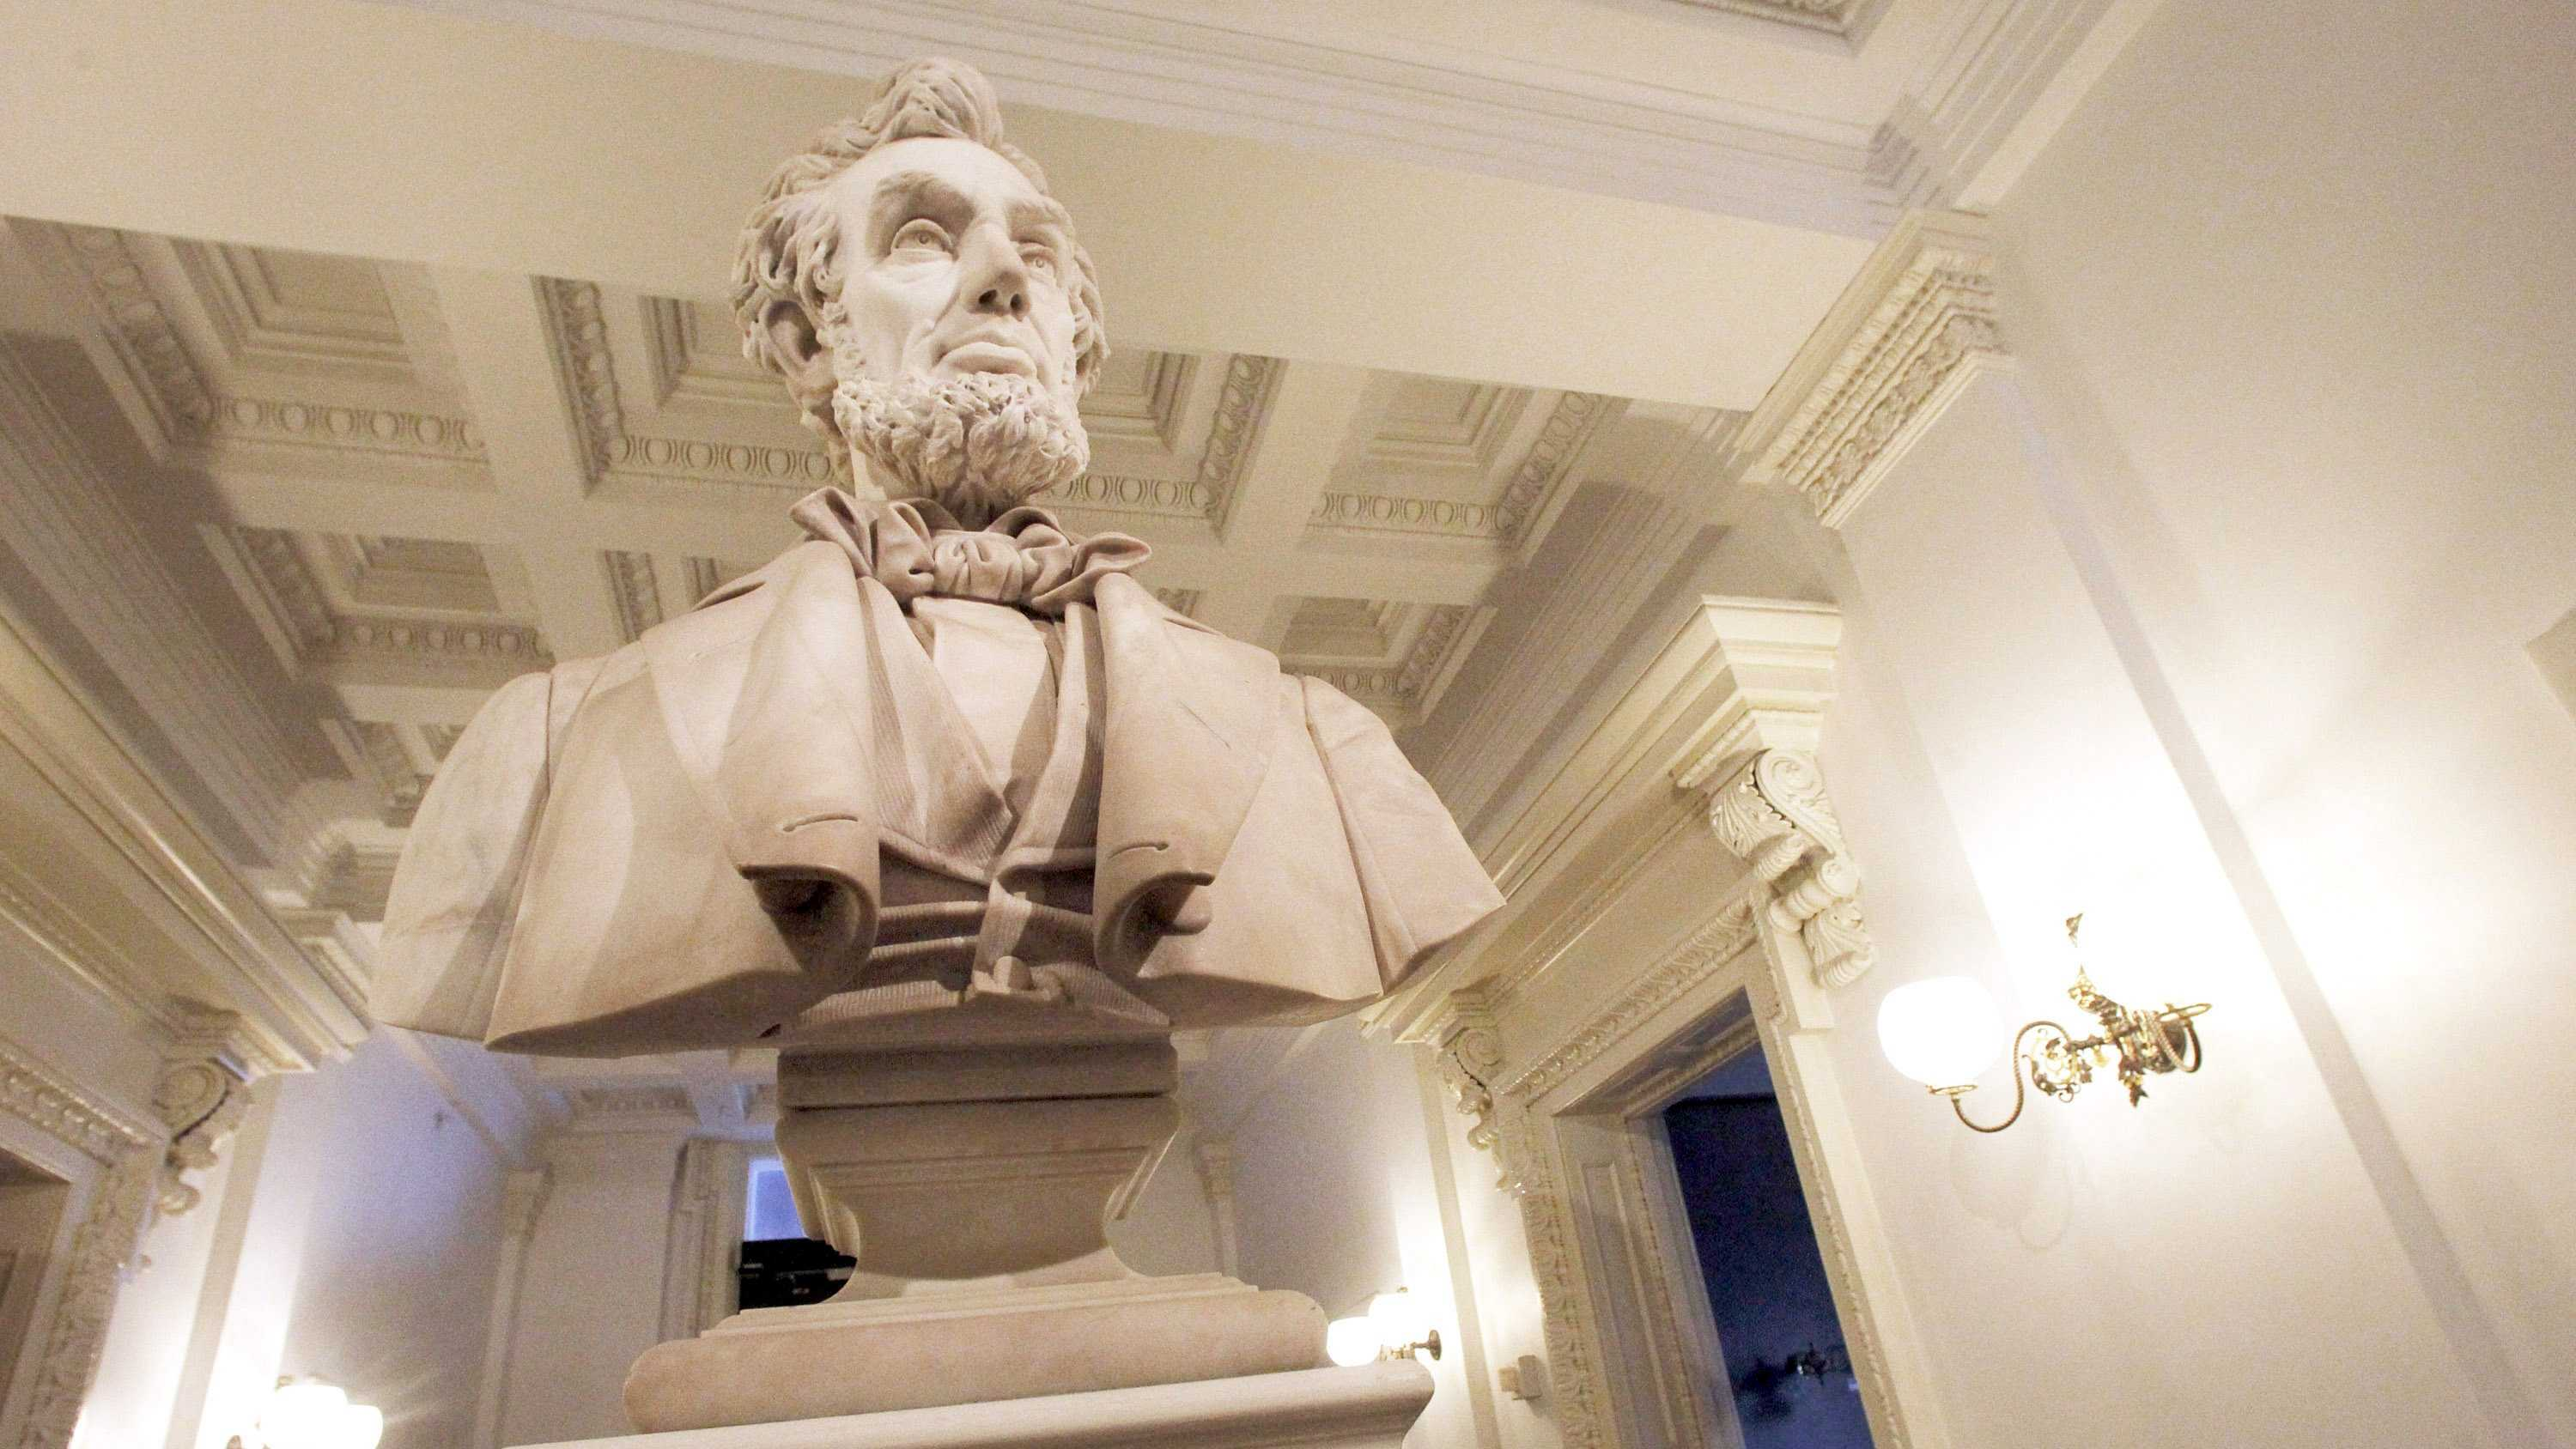 The marble bust of Abraham Lincoln stands in a hallway of the statehouse on Thursday, Jan. 17, 2013 in Montpelier, Vt.